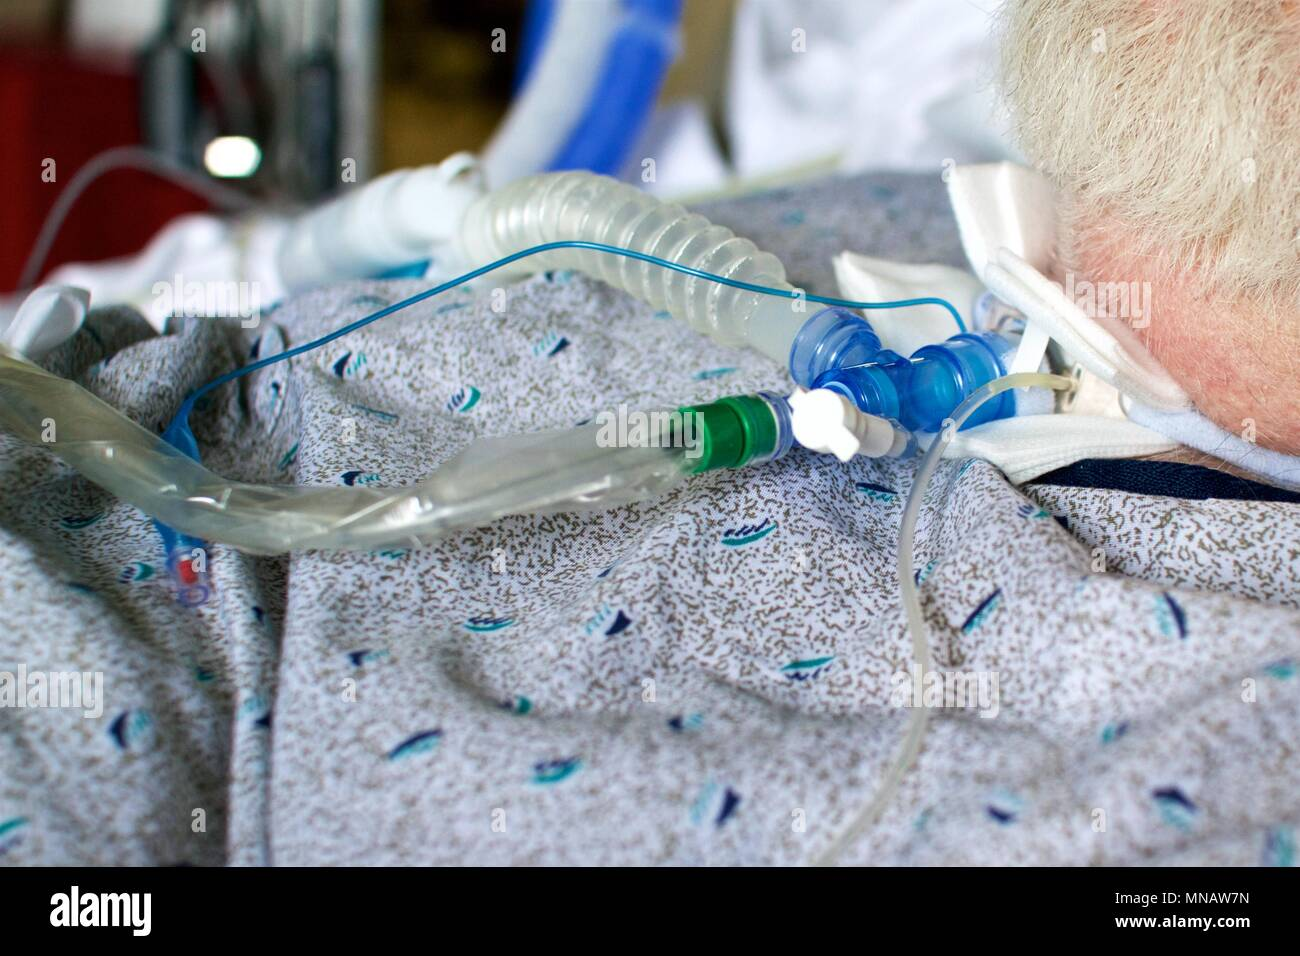 May 14, 2018 - Philadelphia, PA, USA:  Detail of an elderly male patient with a tracheostomy connected to a ventilator. Stock Photo